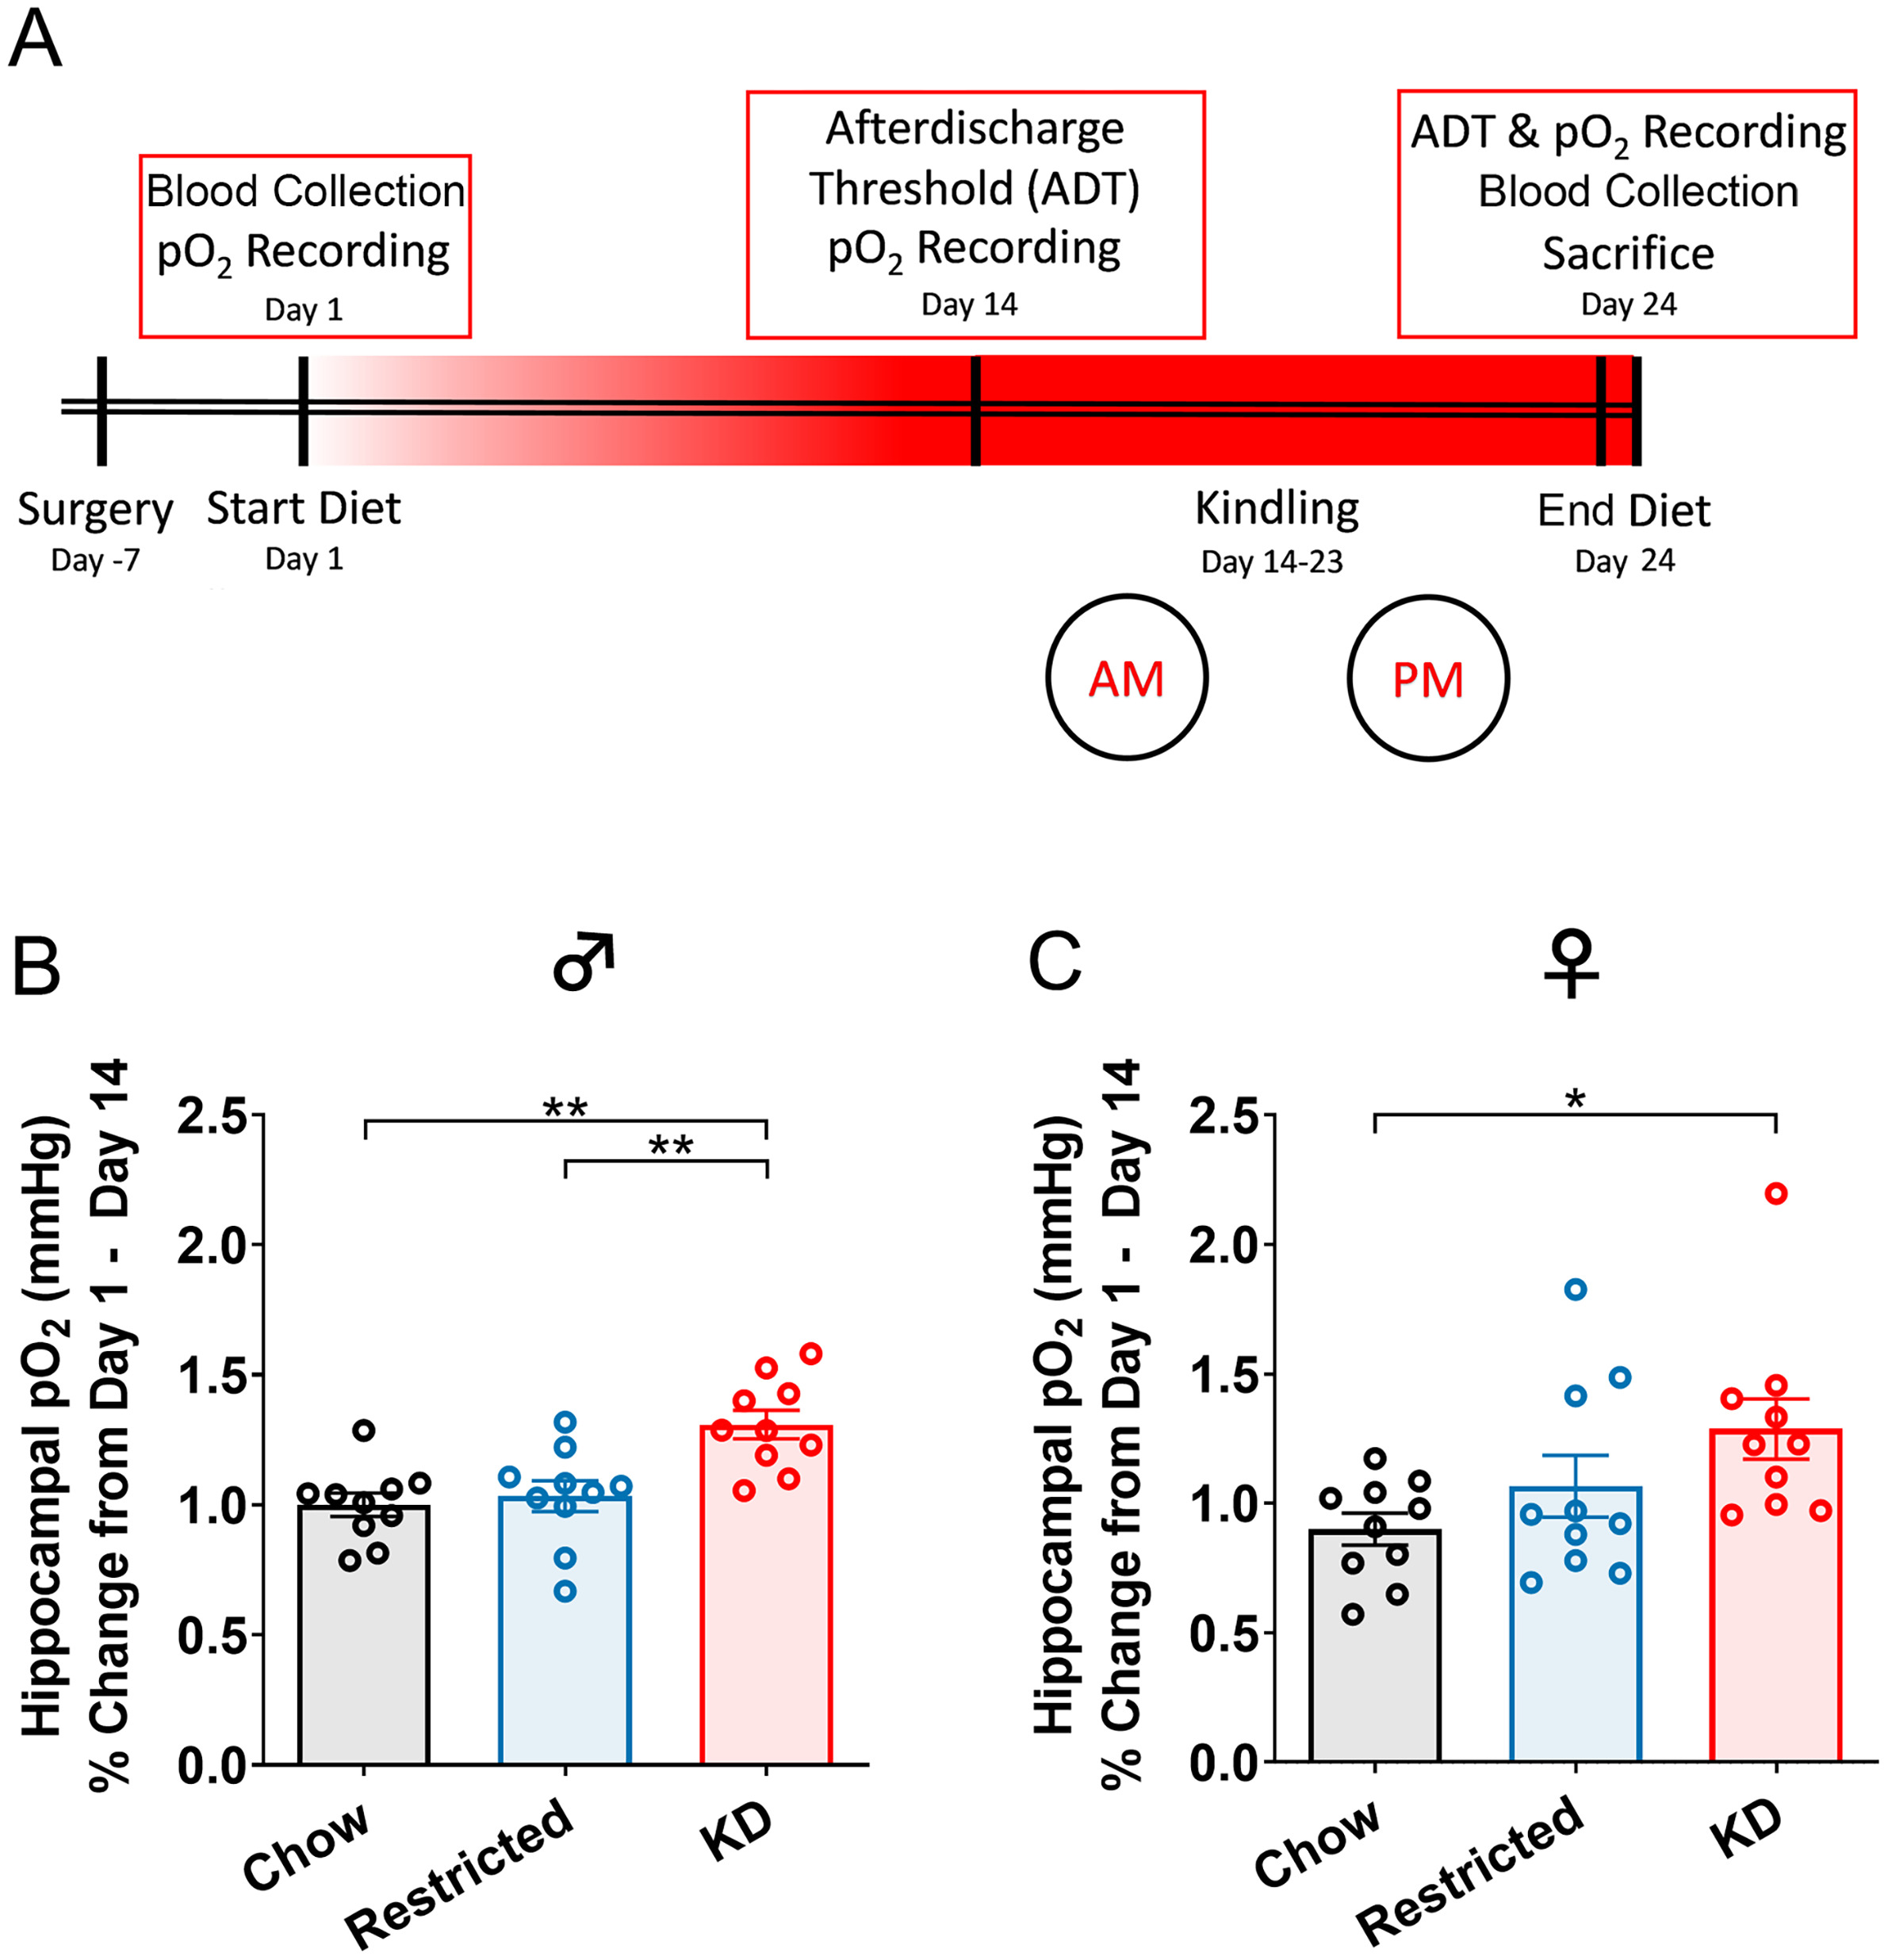 The ketogenic diet raises brain oxygen levels, attenuates postictal hypoxia, and protects against learning impairments